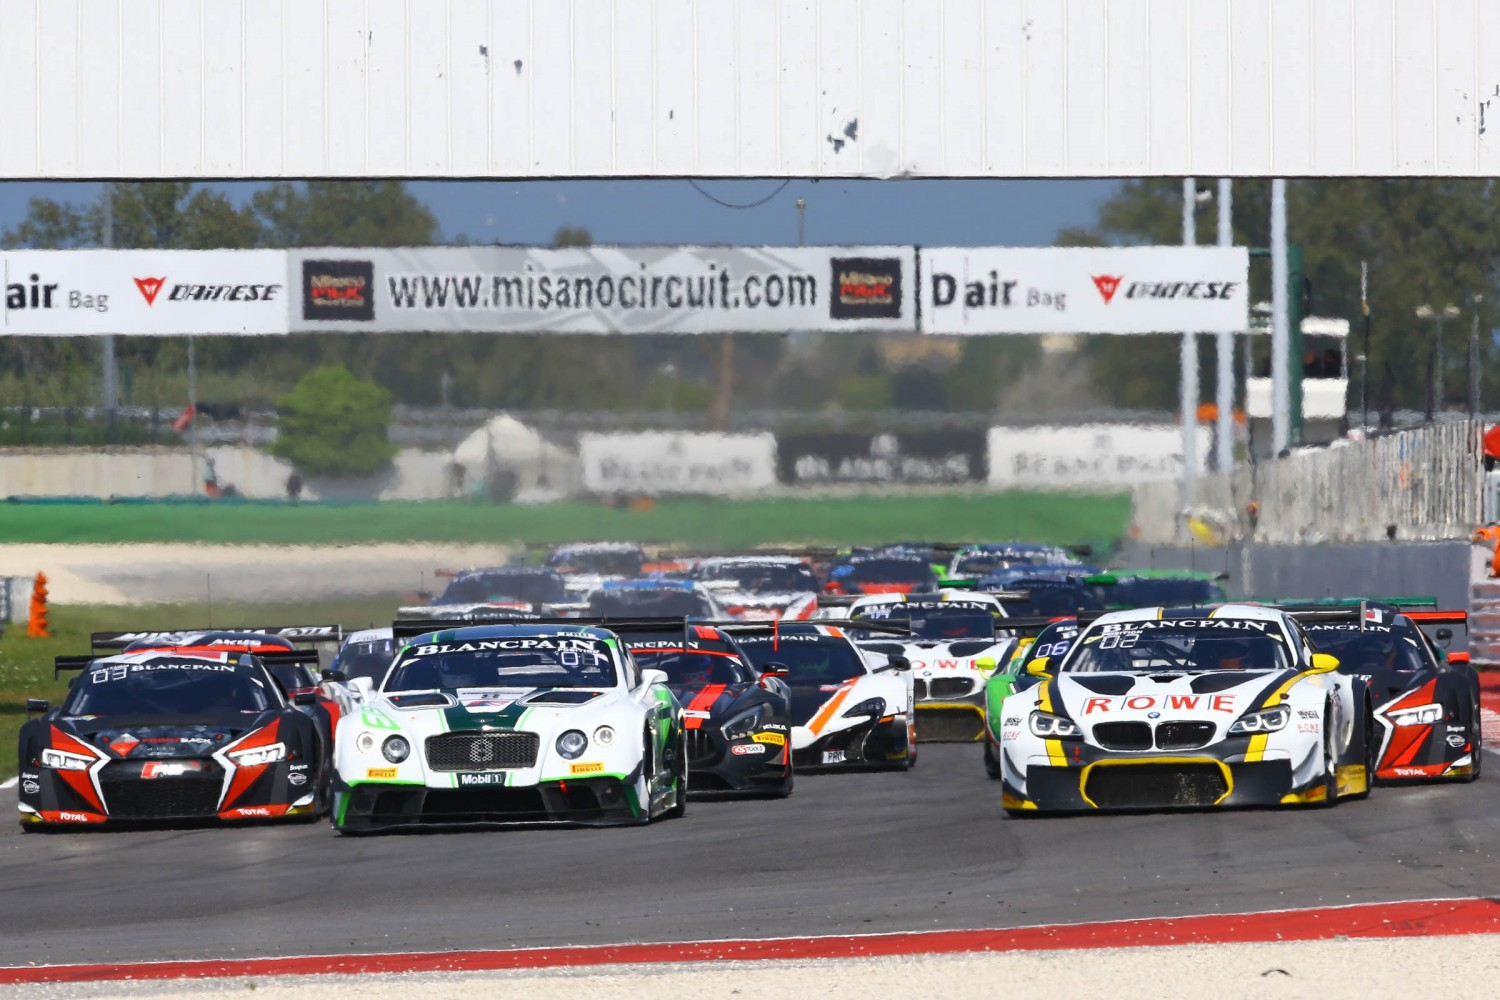 Buhk and Baumann commence their title defence in Misano